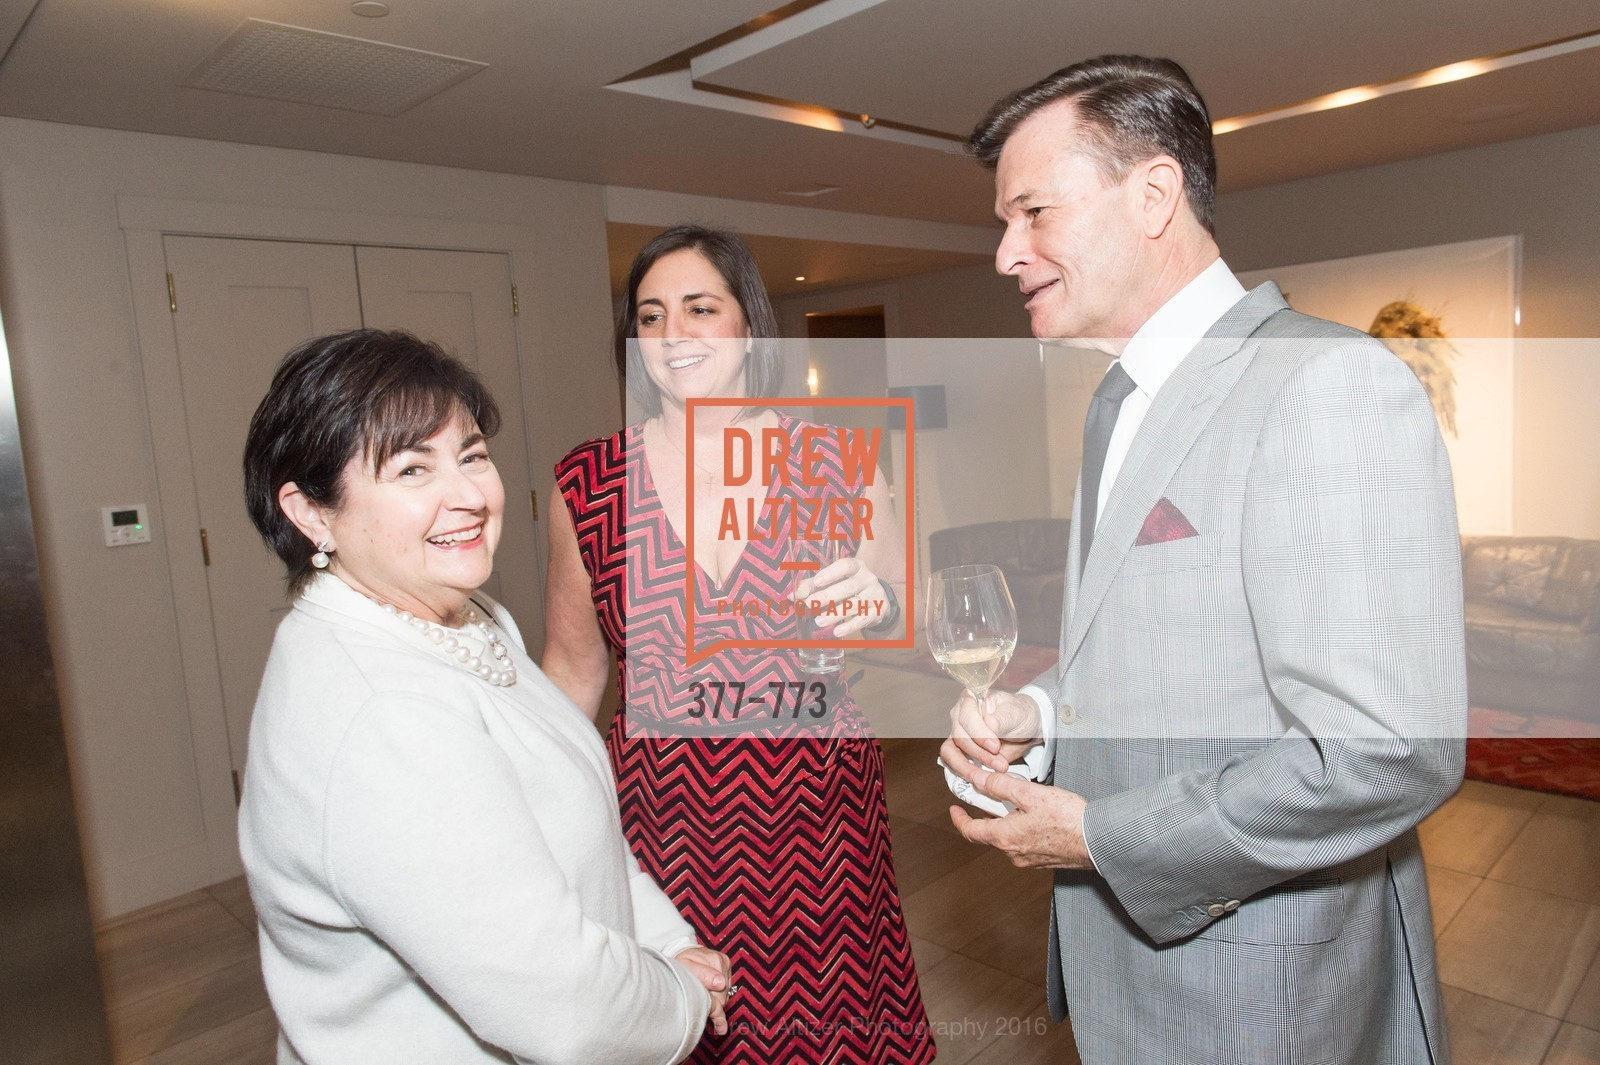 Janet Schindler, Rachelle Martini, Frank Symon, Sotheby's International Realty's Celebrates the New Year, The Battery, Penthouse. 717 Battery St, January 27th, 2016,Drew Altizer, Drew Altizer Photography, full-service agency, private events, San Francisco photographer, photographer california